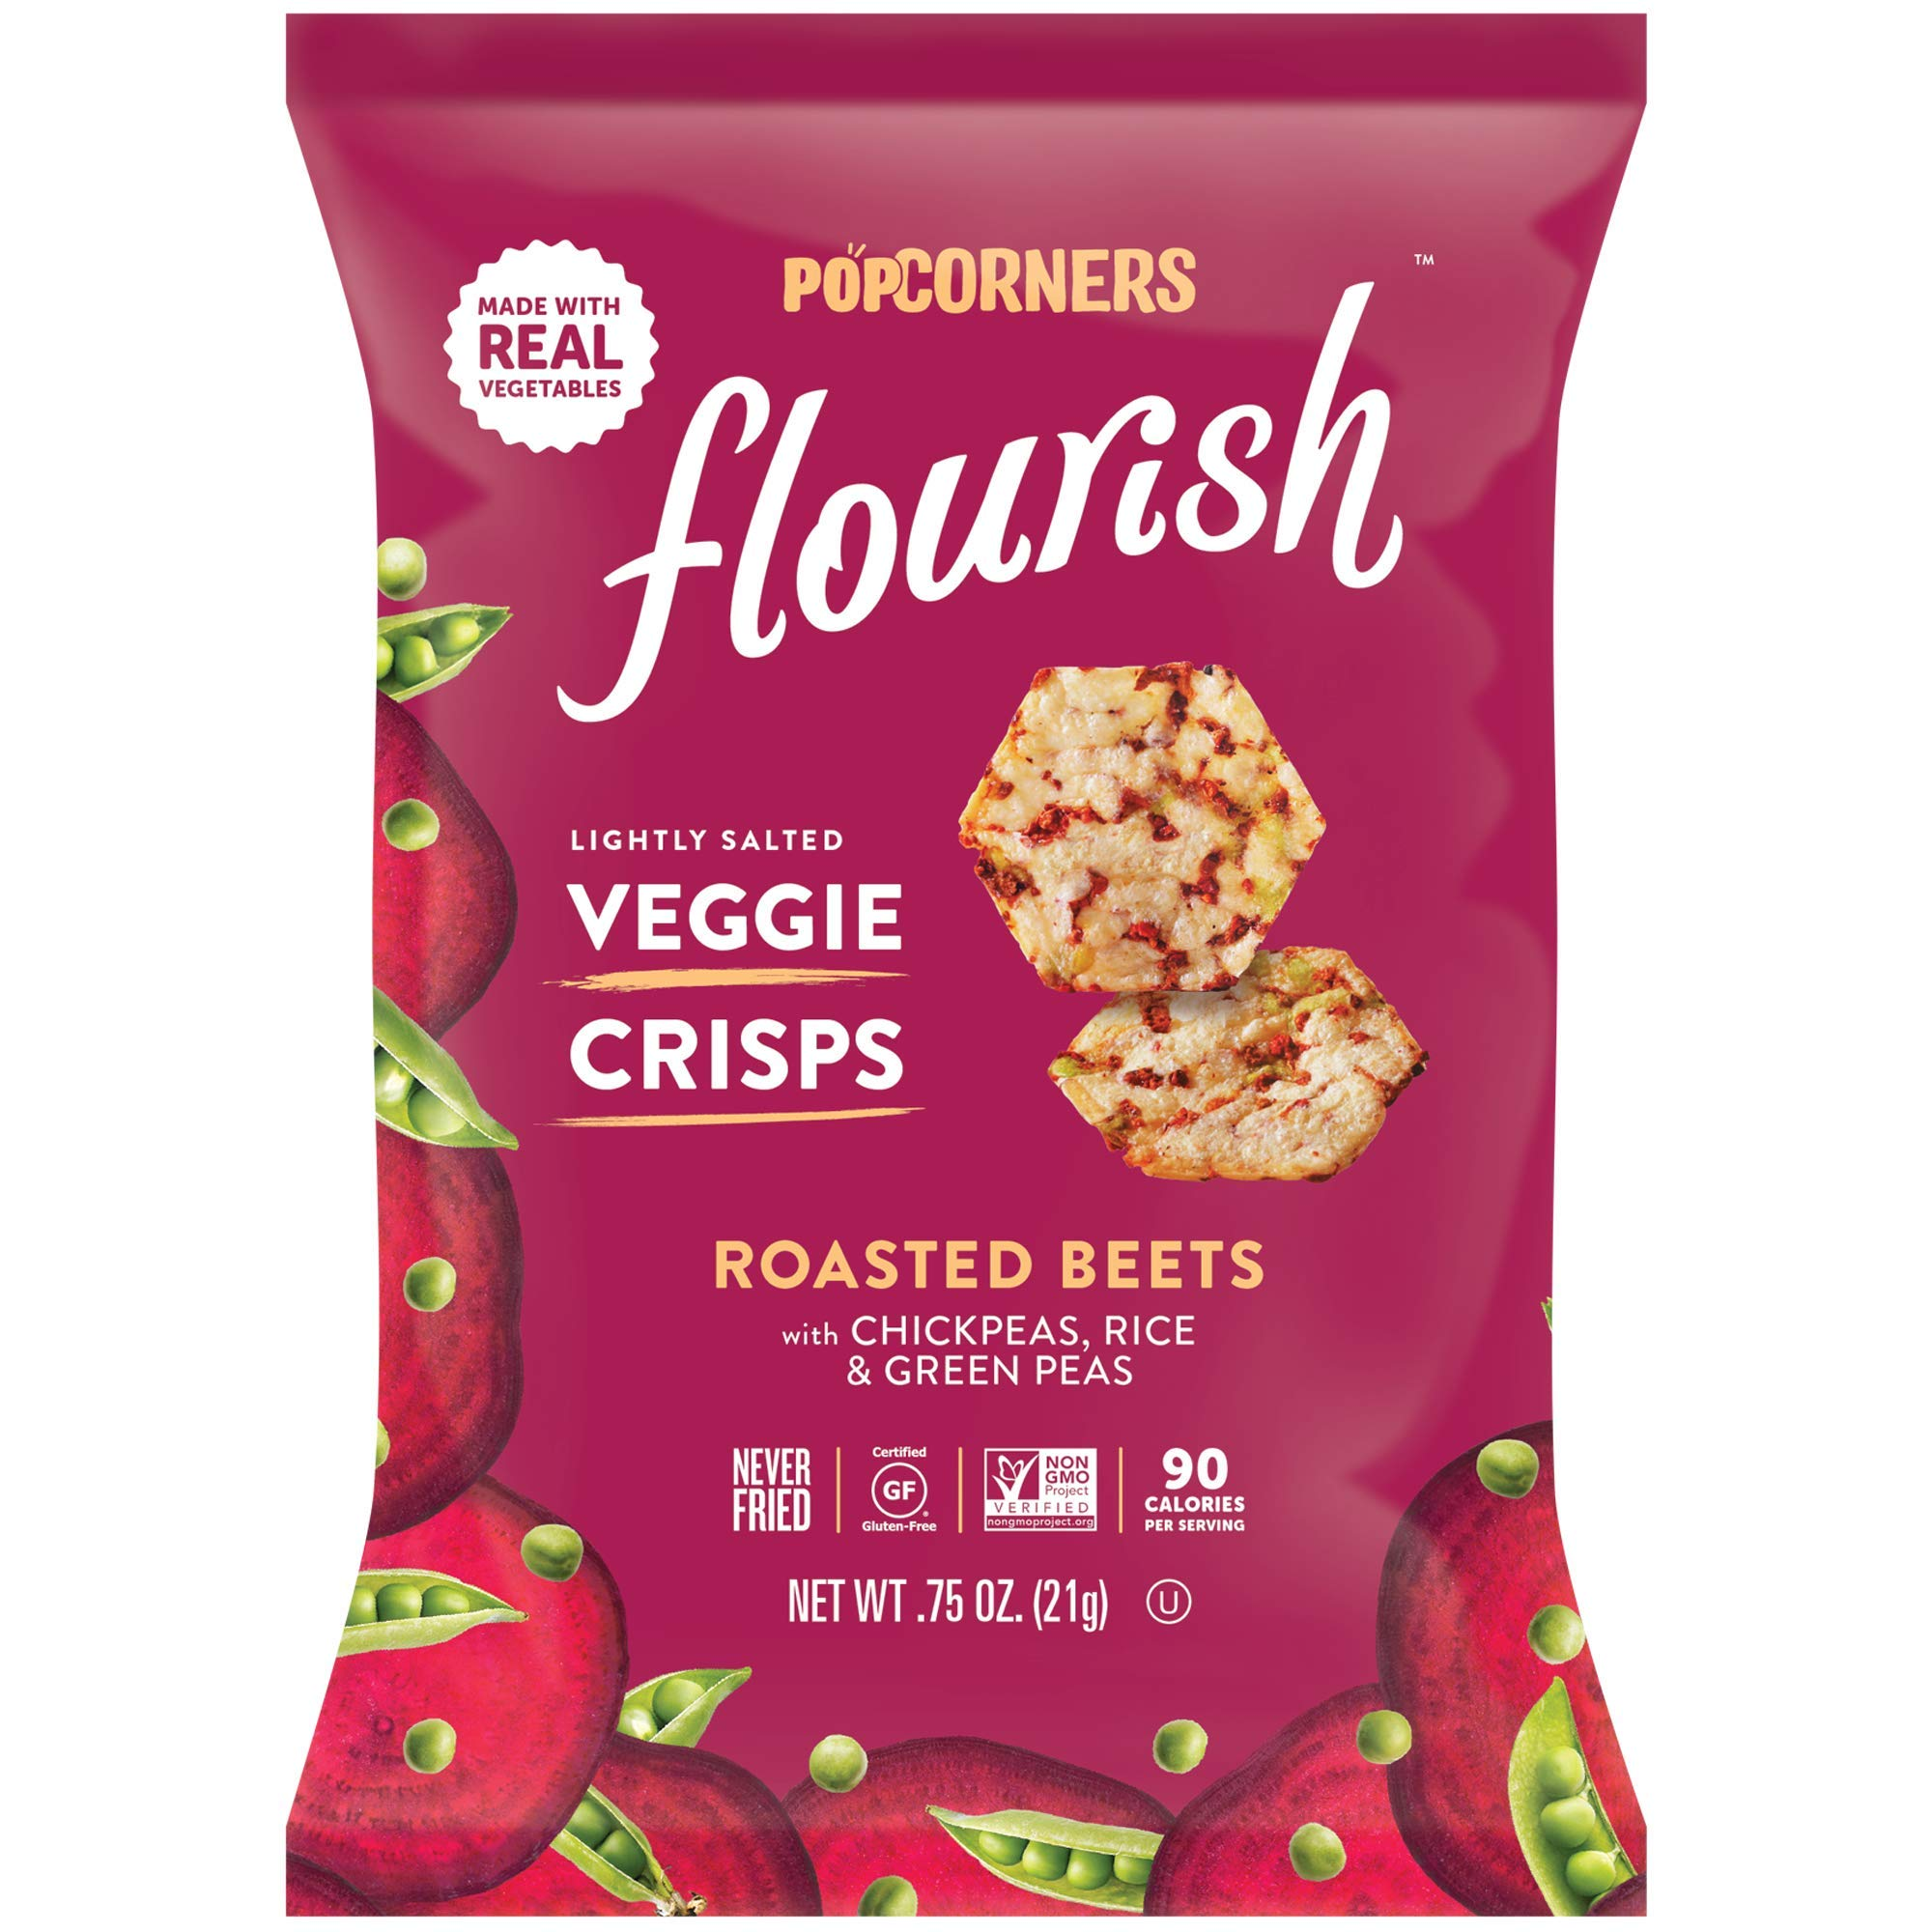 PopCorners Flourish Roasted Beets Veggie Crisps | Plant-Based Protein, Gluten Free Snacks | (24 Pack, .75 oz Snack Bags) by Popcorners